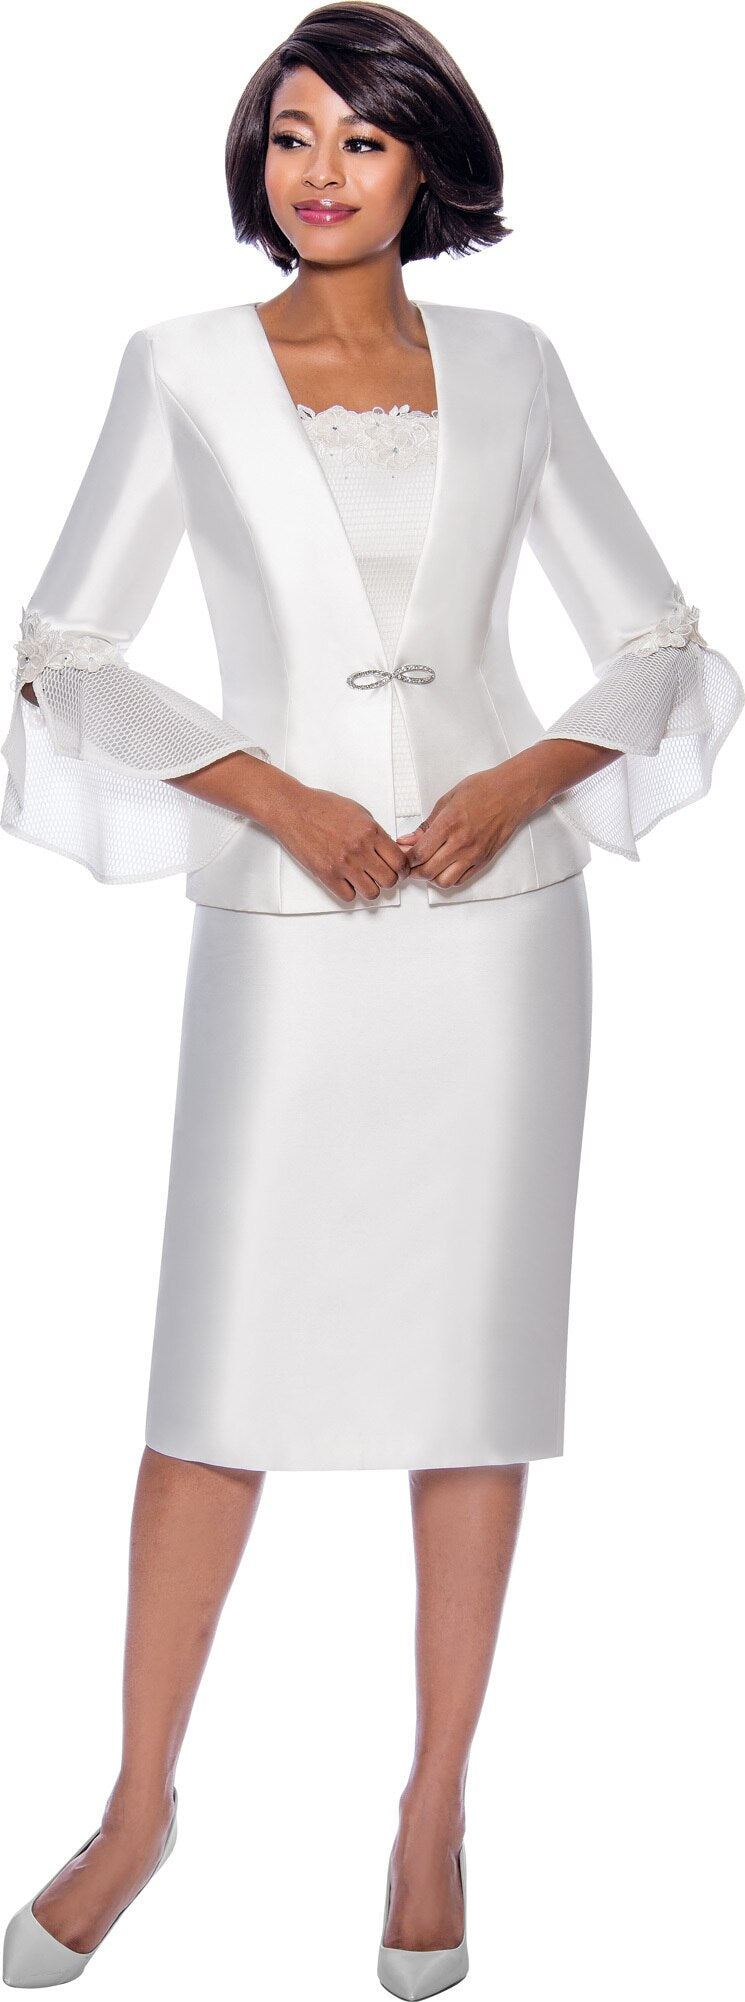 Terramina Suit 7810-White - Church Suits For Less